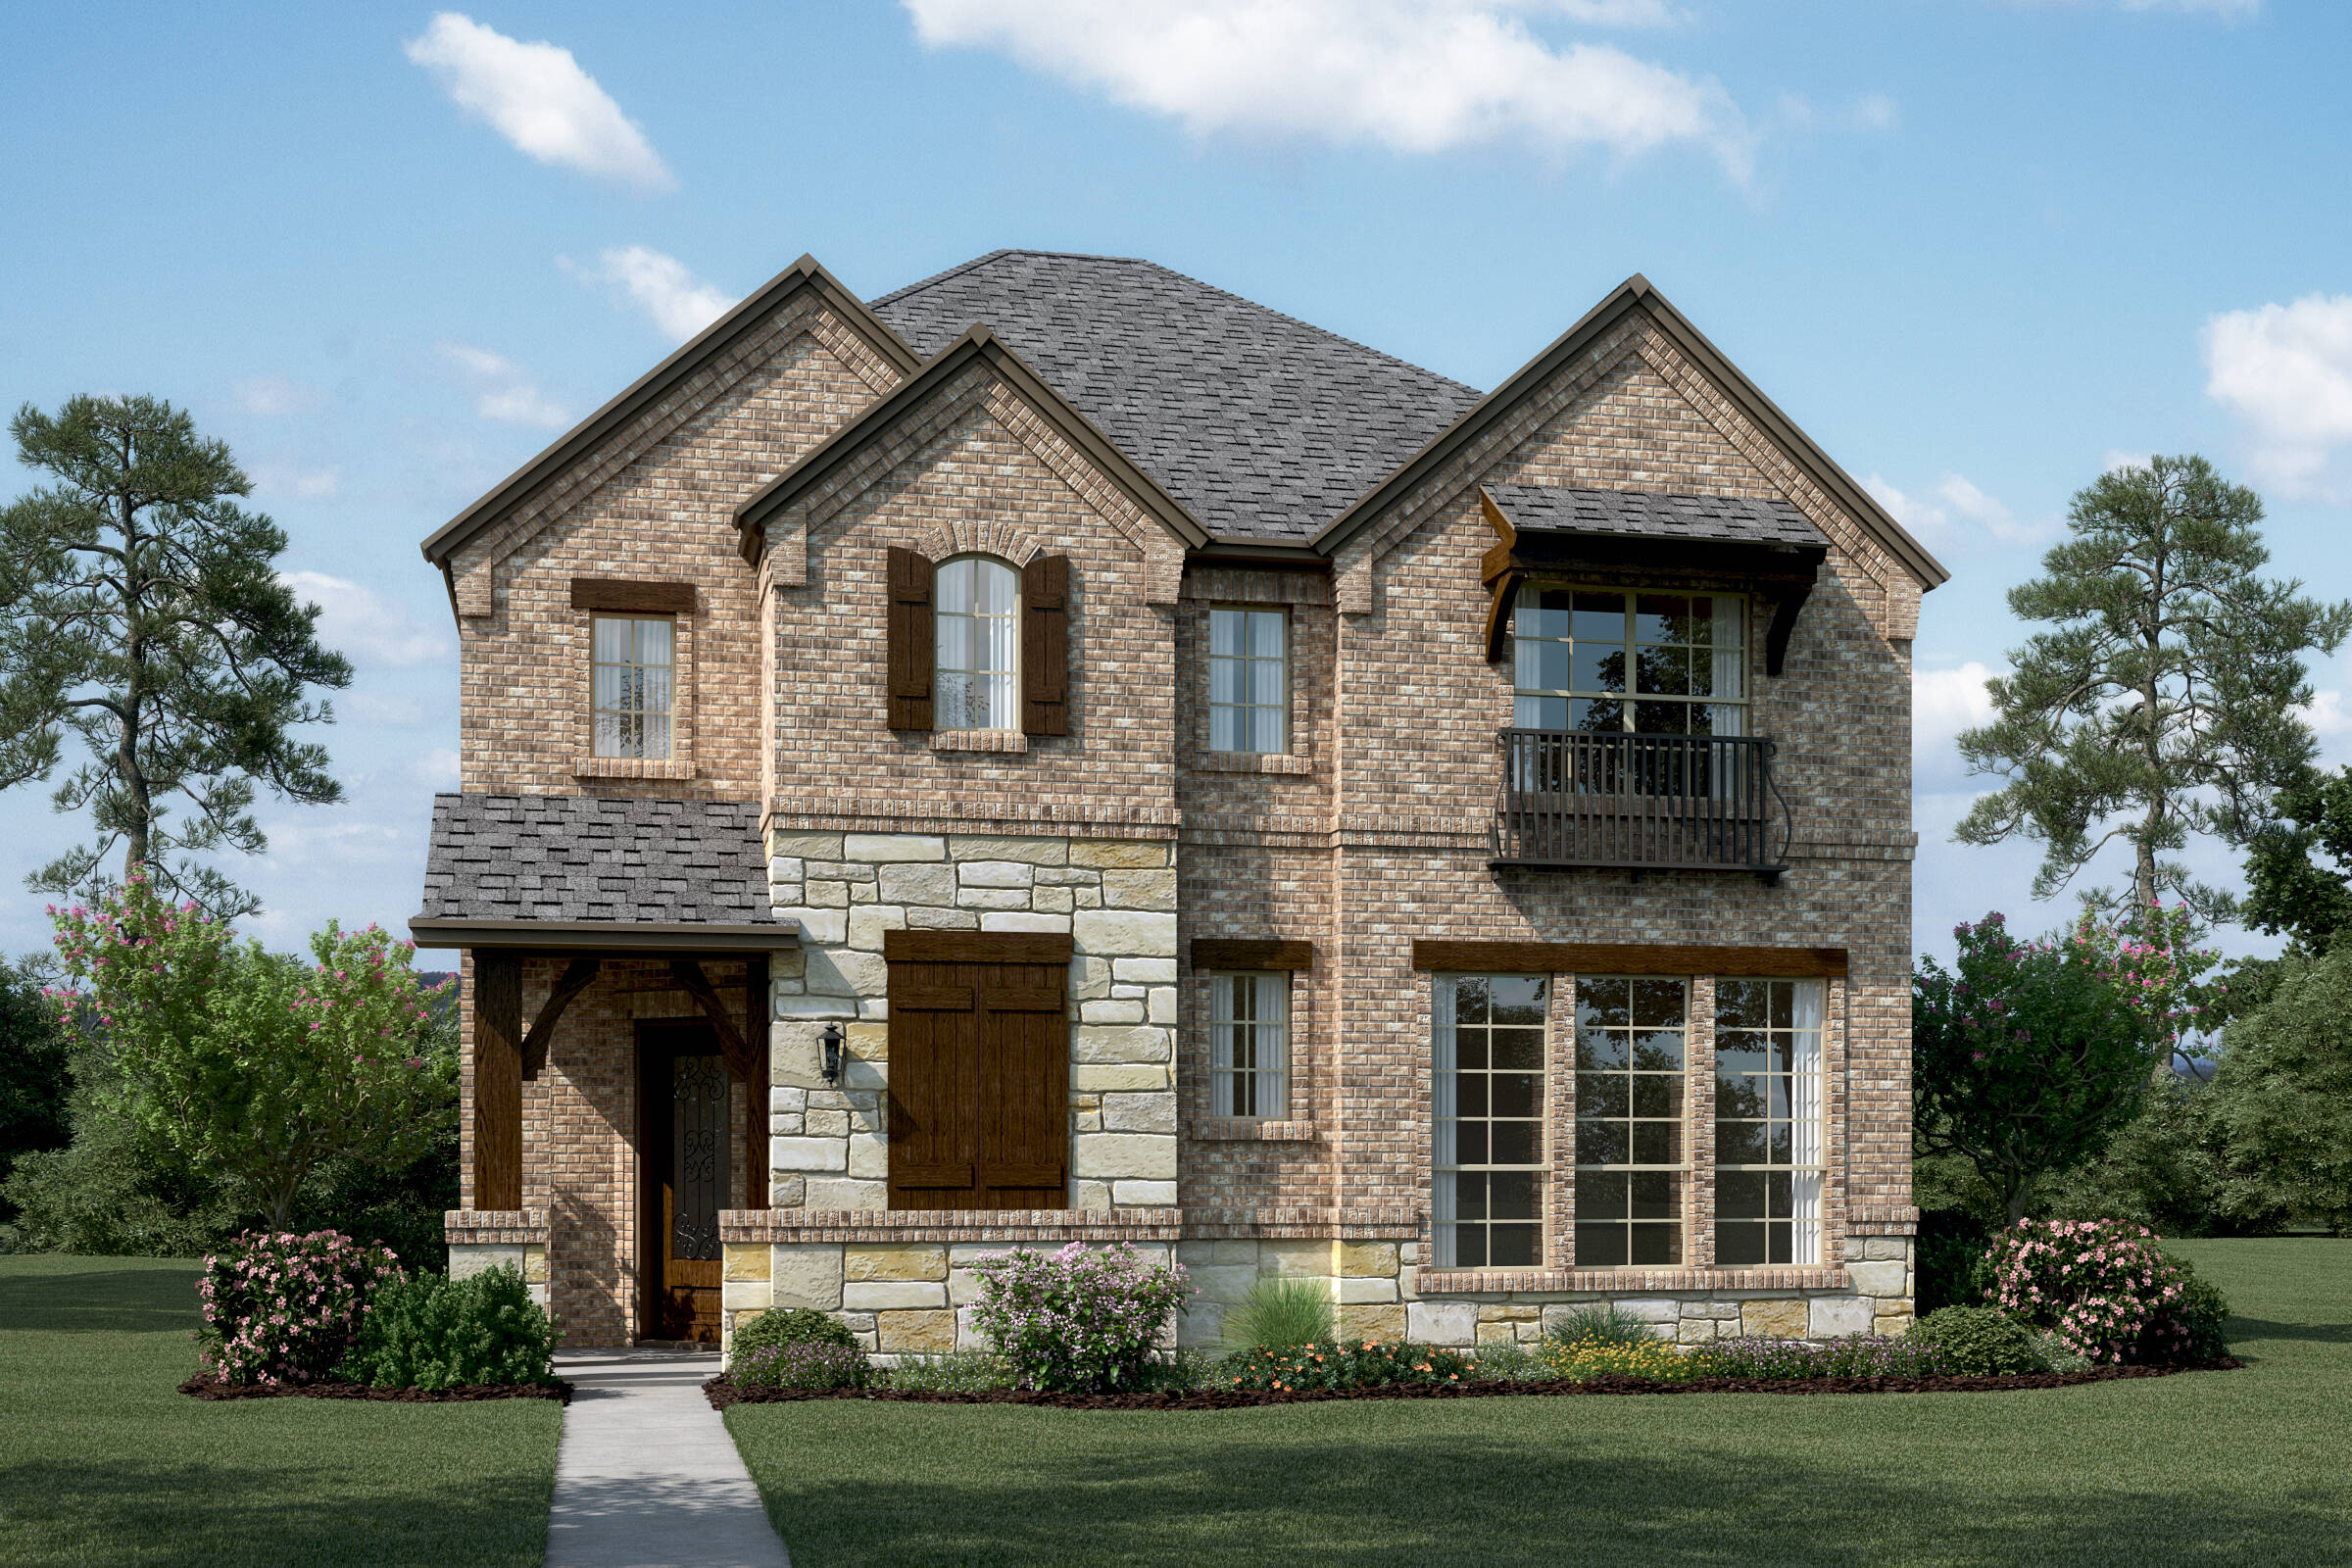 Riverchase-II-S-Stone-Elev-new-homes-near-dallas-TX